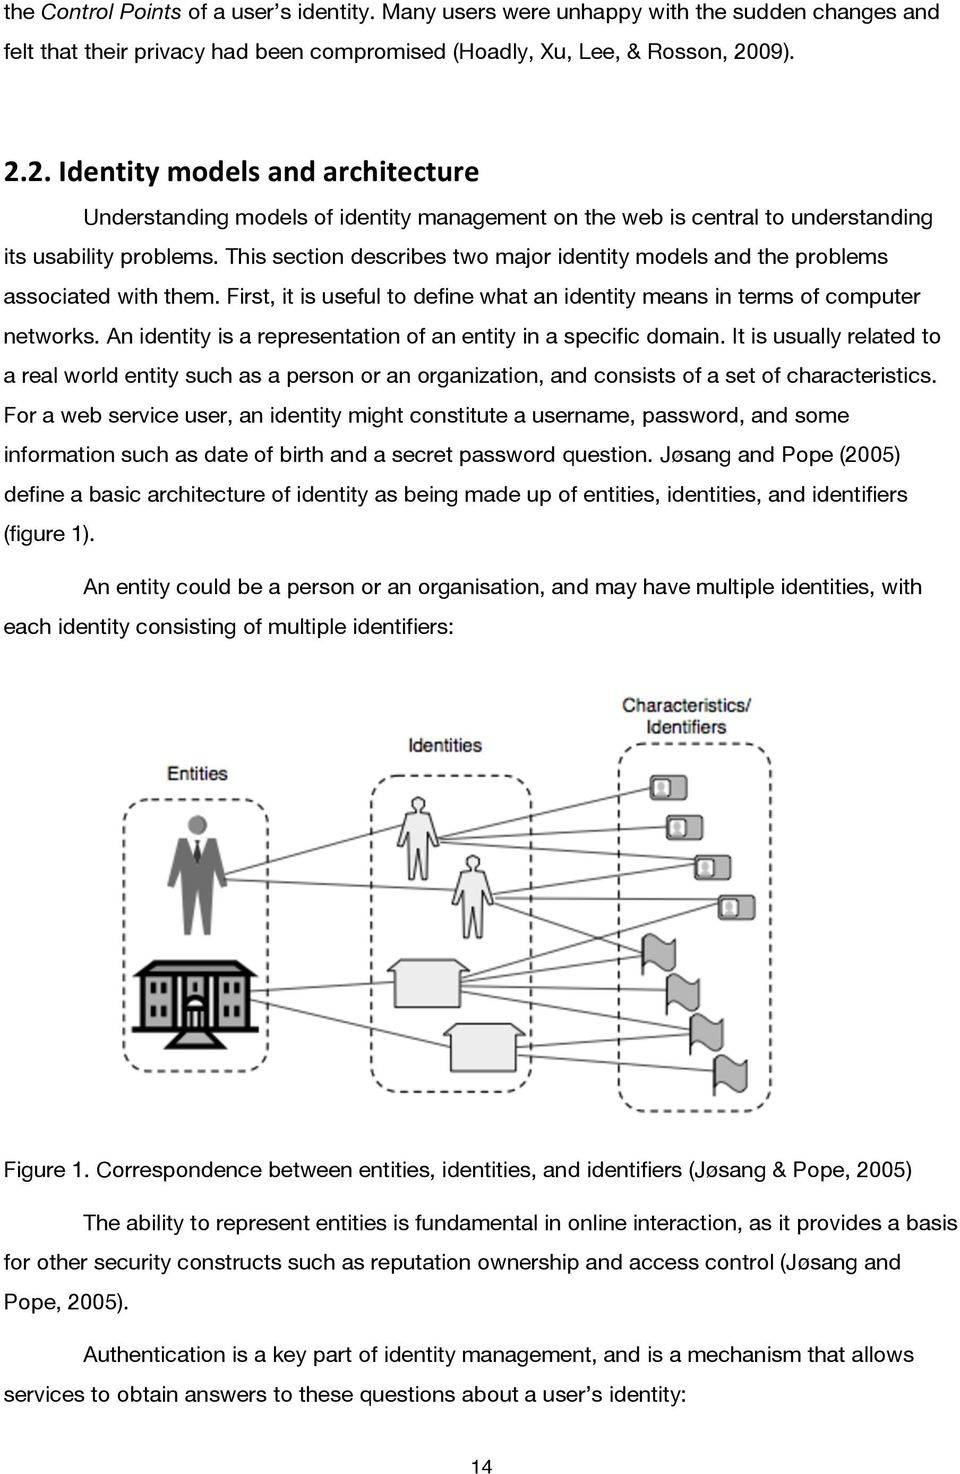 This section describes two major identity models and the problems associated with them. First, it is useful to define what an identity means in terms of computer networks.